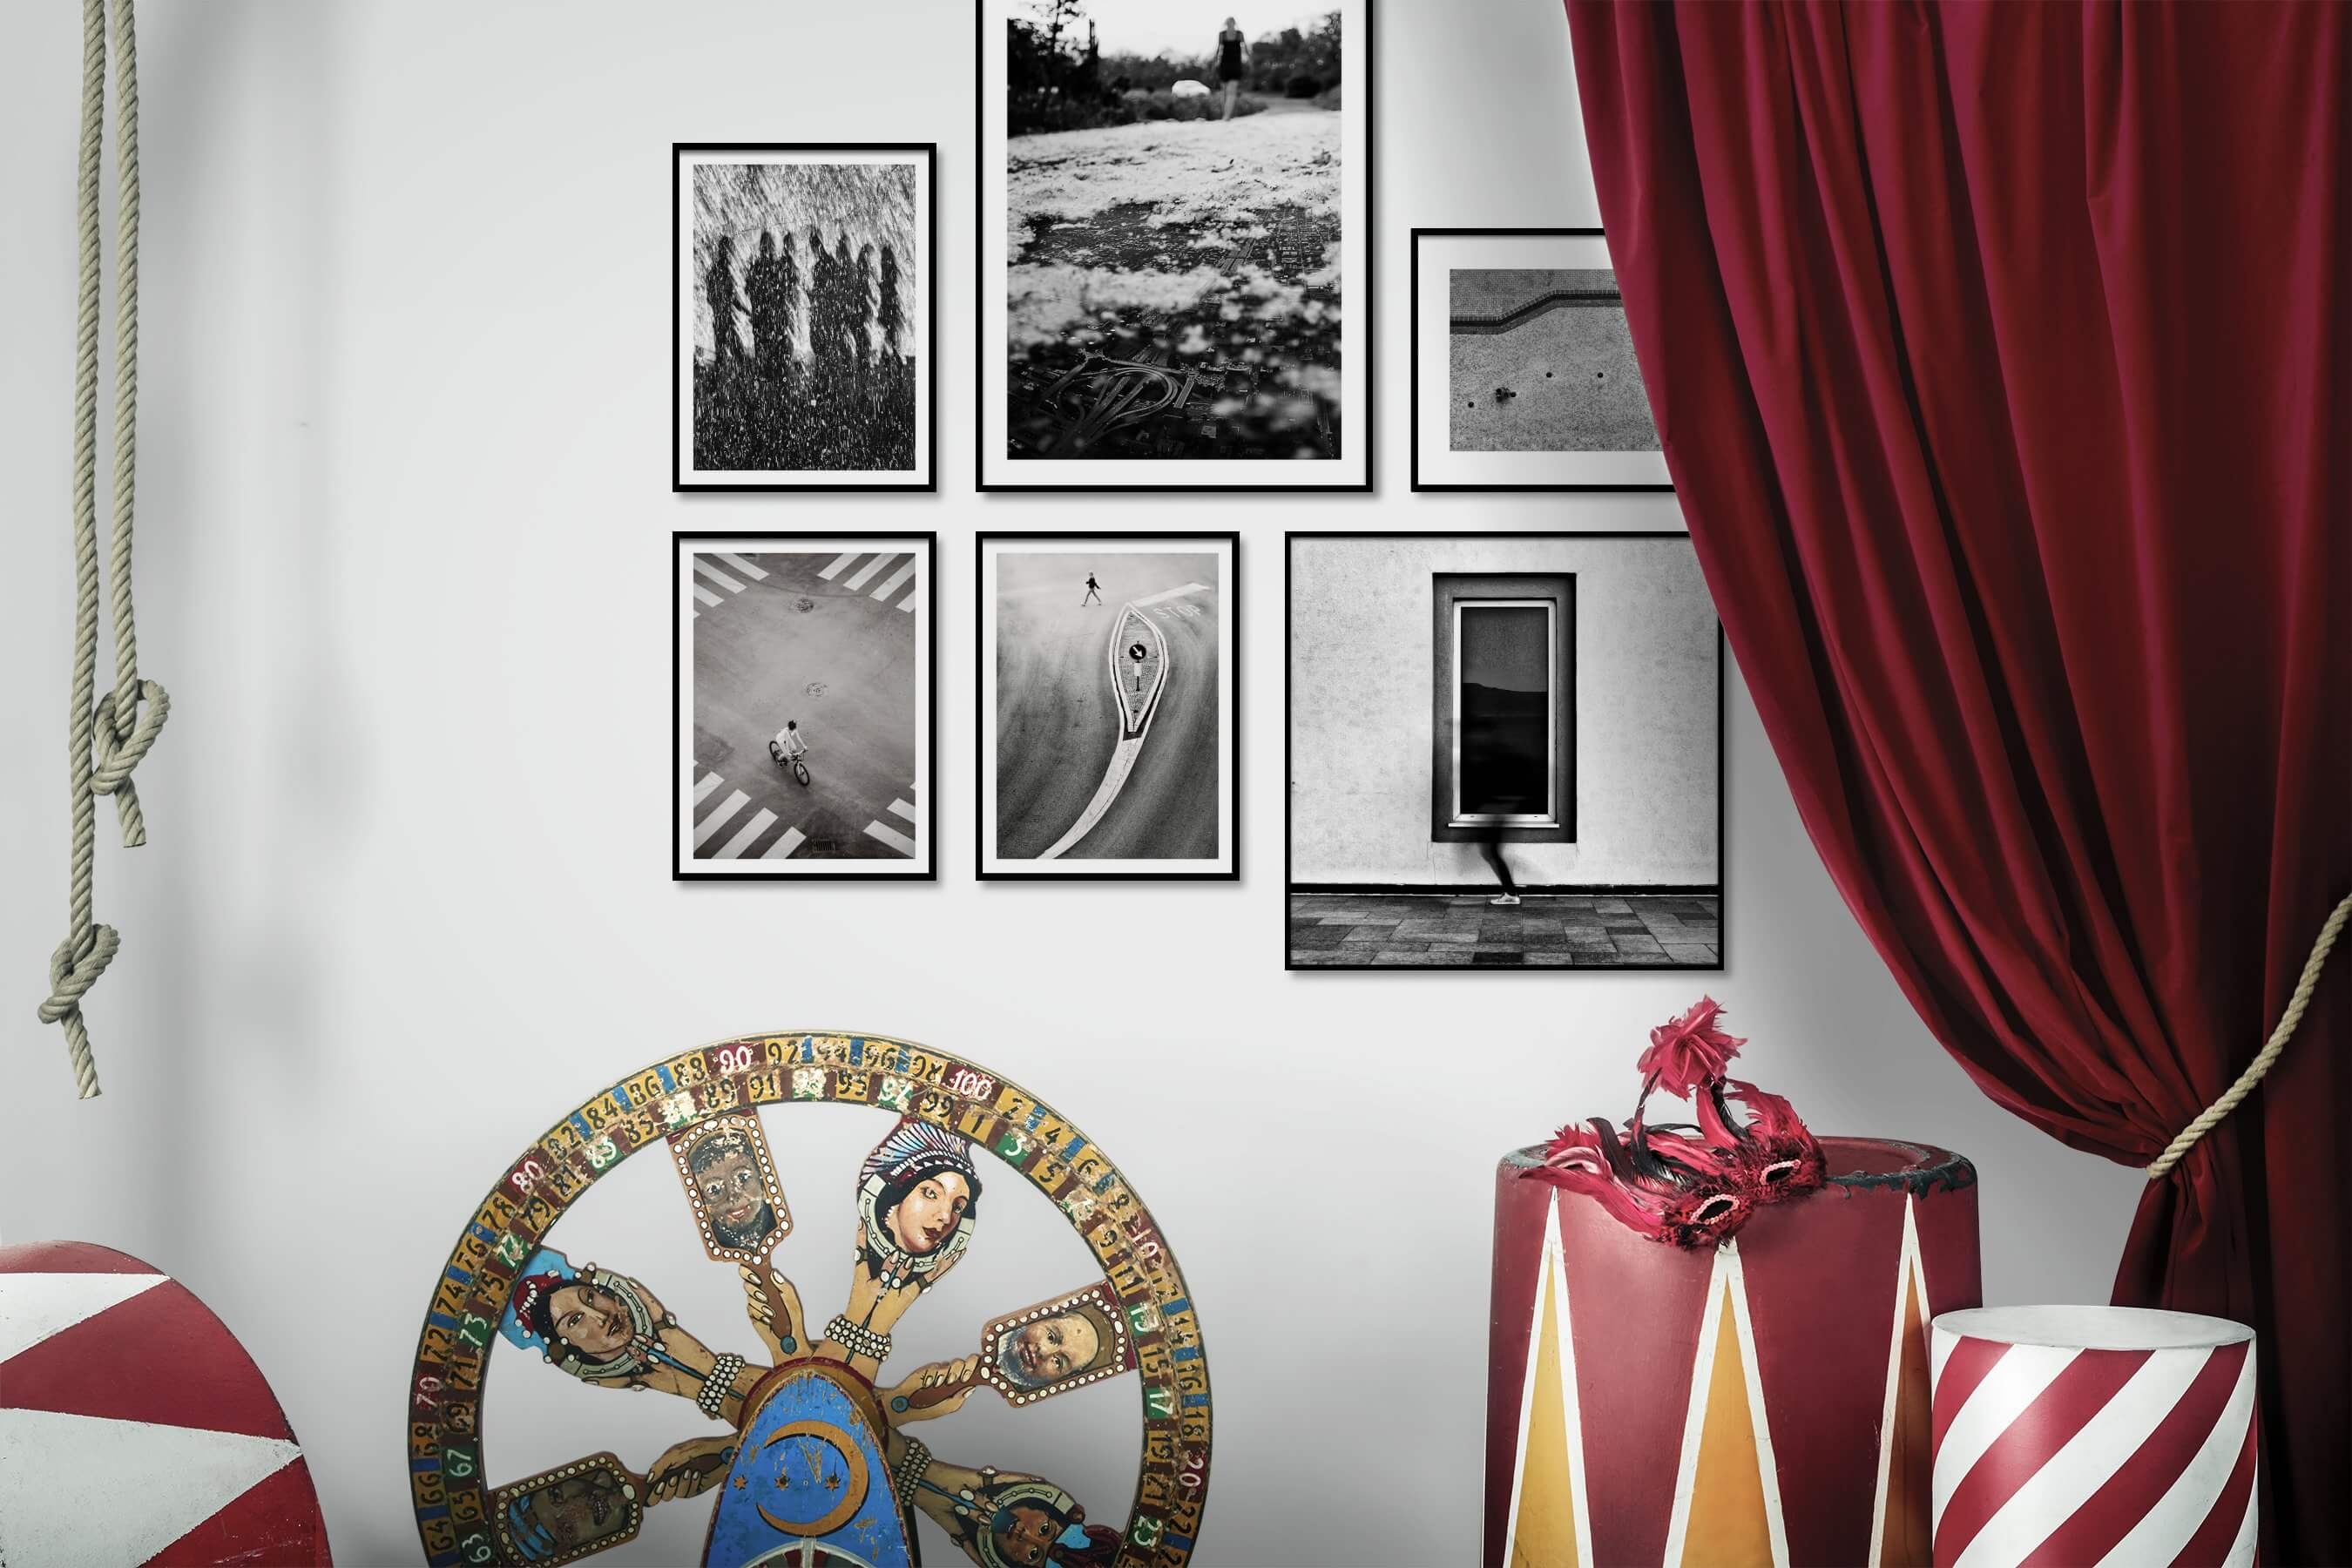 Gallery wall idea with six framed pictures arranged on a wall depicting Black & White, For the Moderate, Artsy, City Life, and For the Minimalist